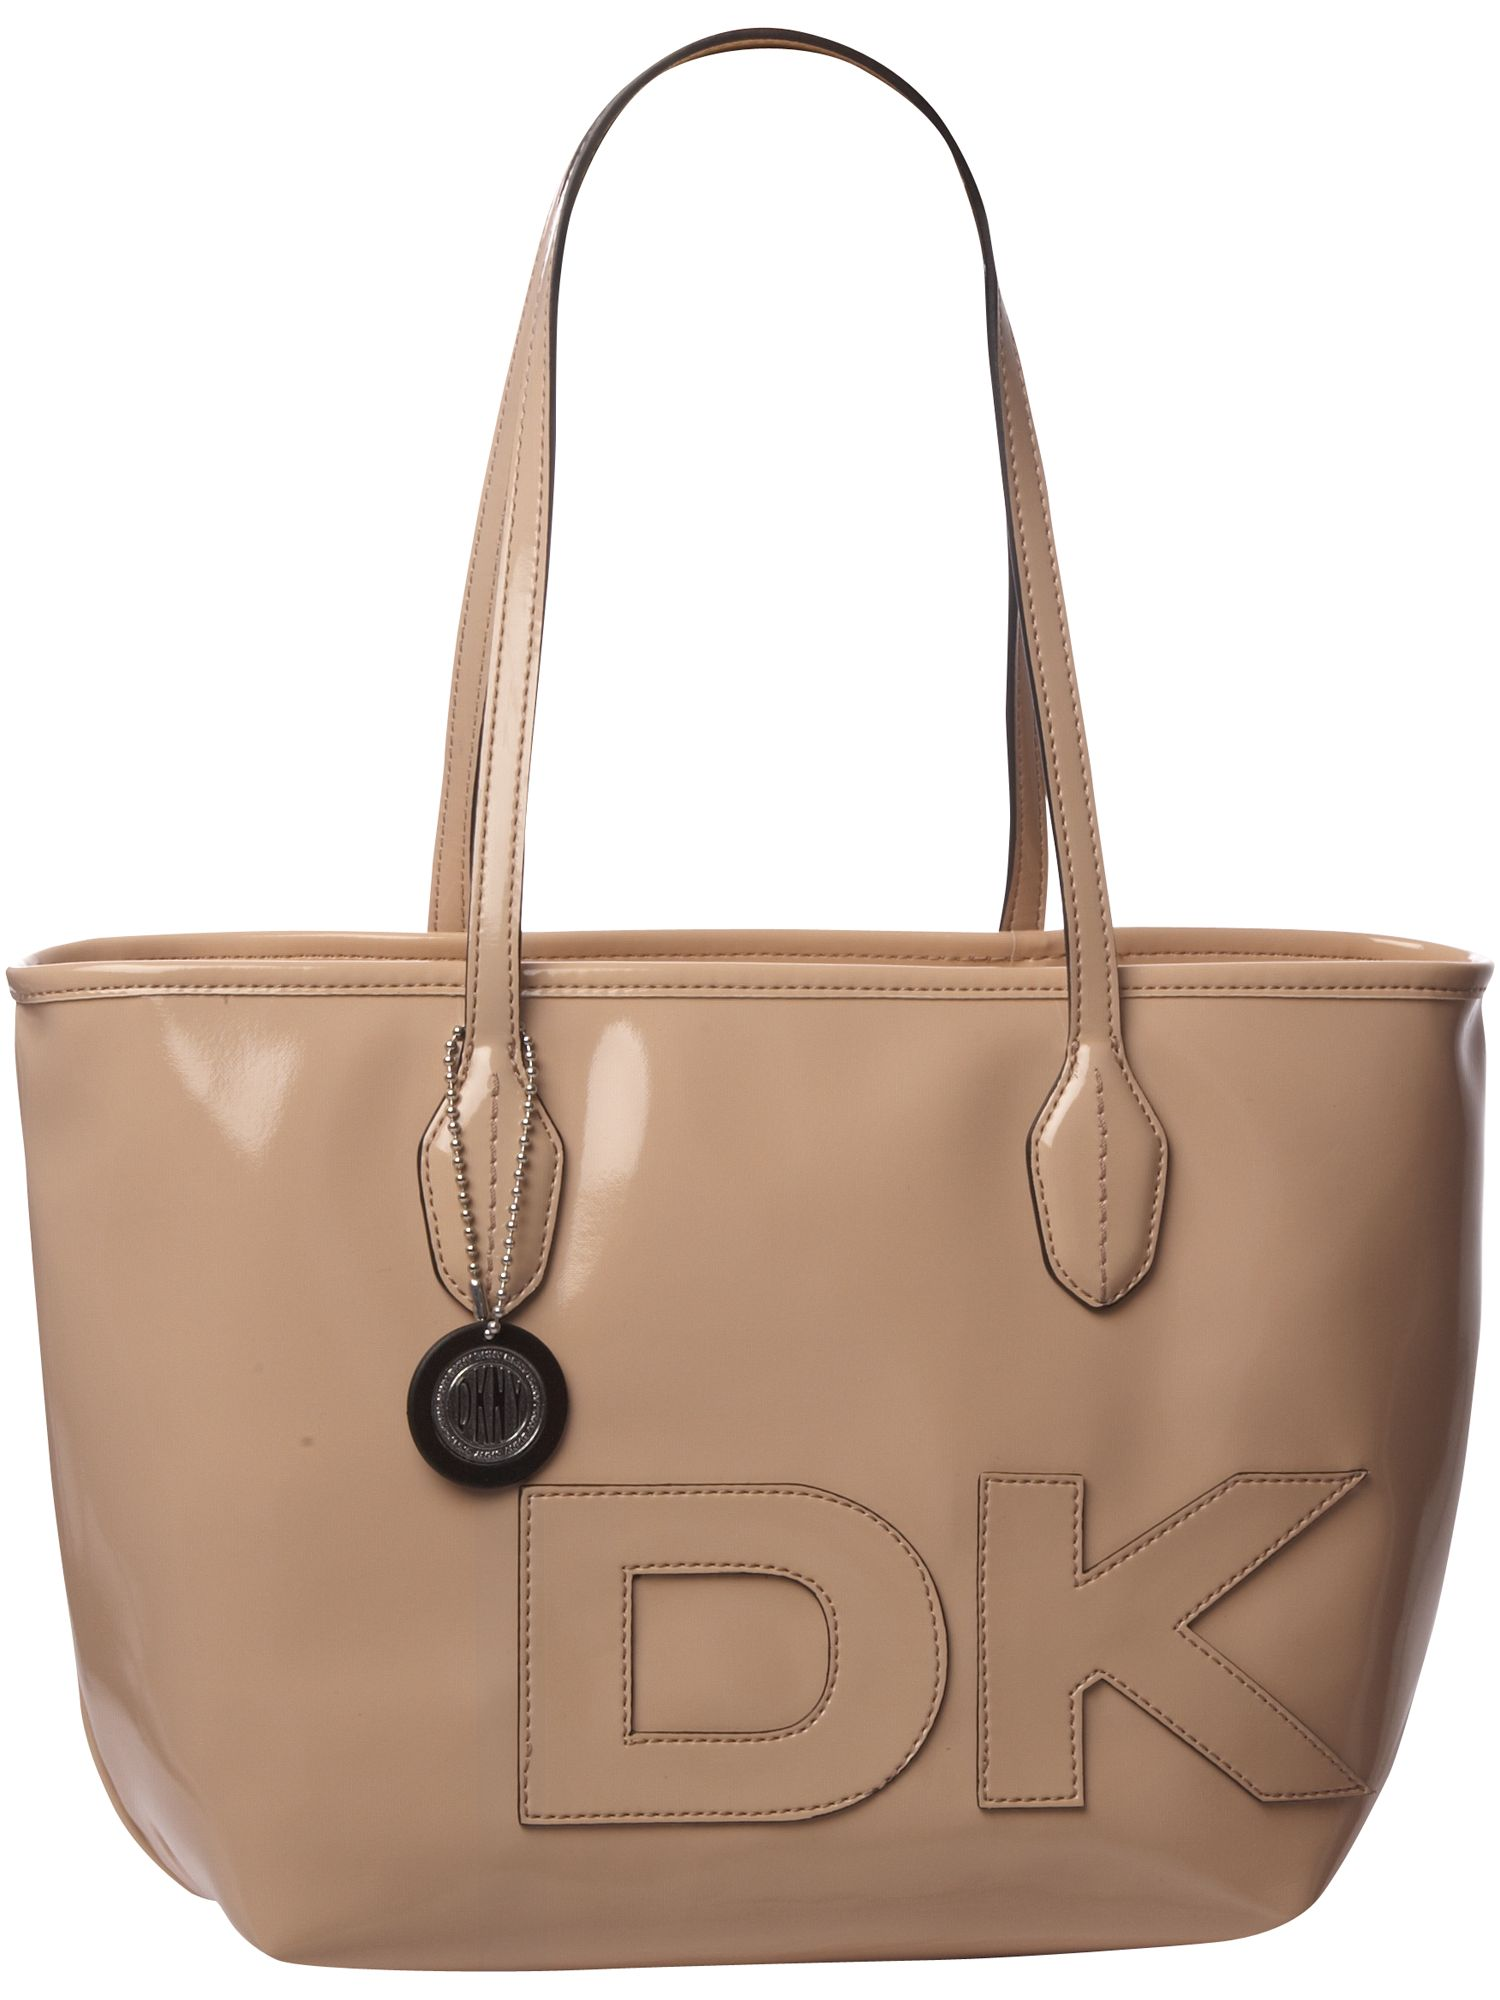 DKNY Active Patent with logo large PU tote bag product image